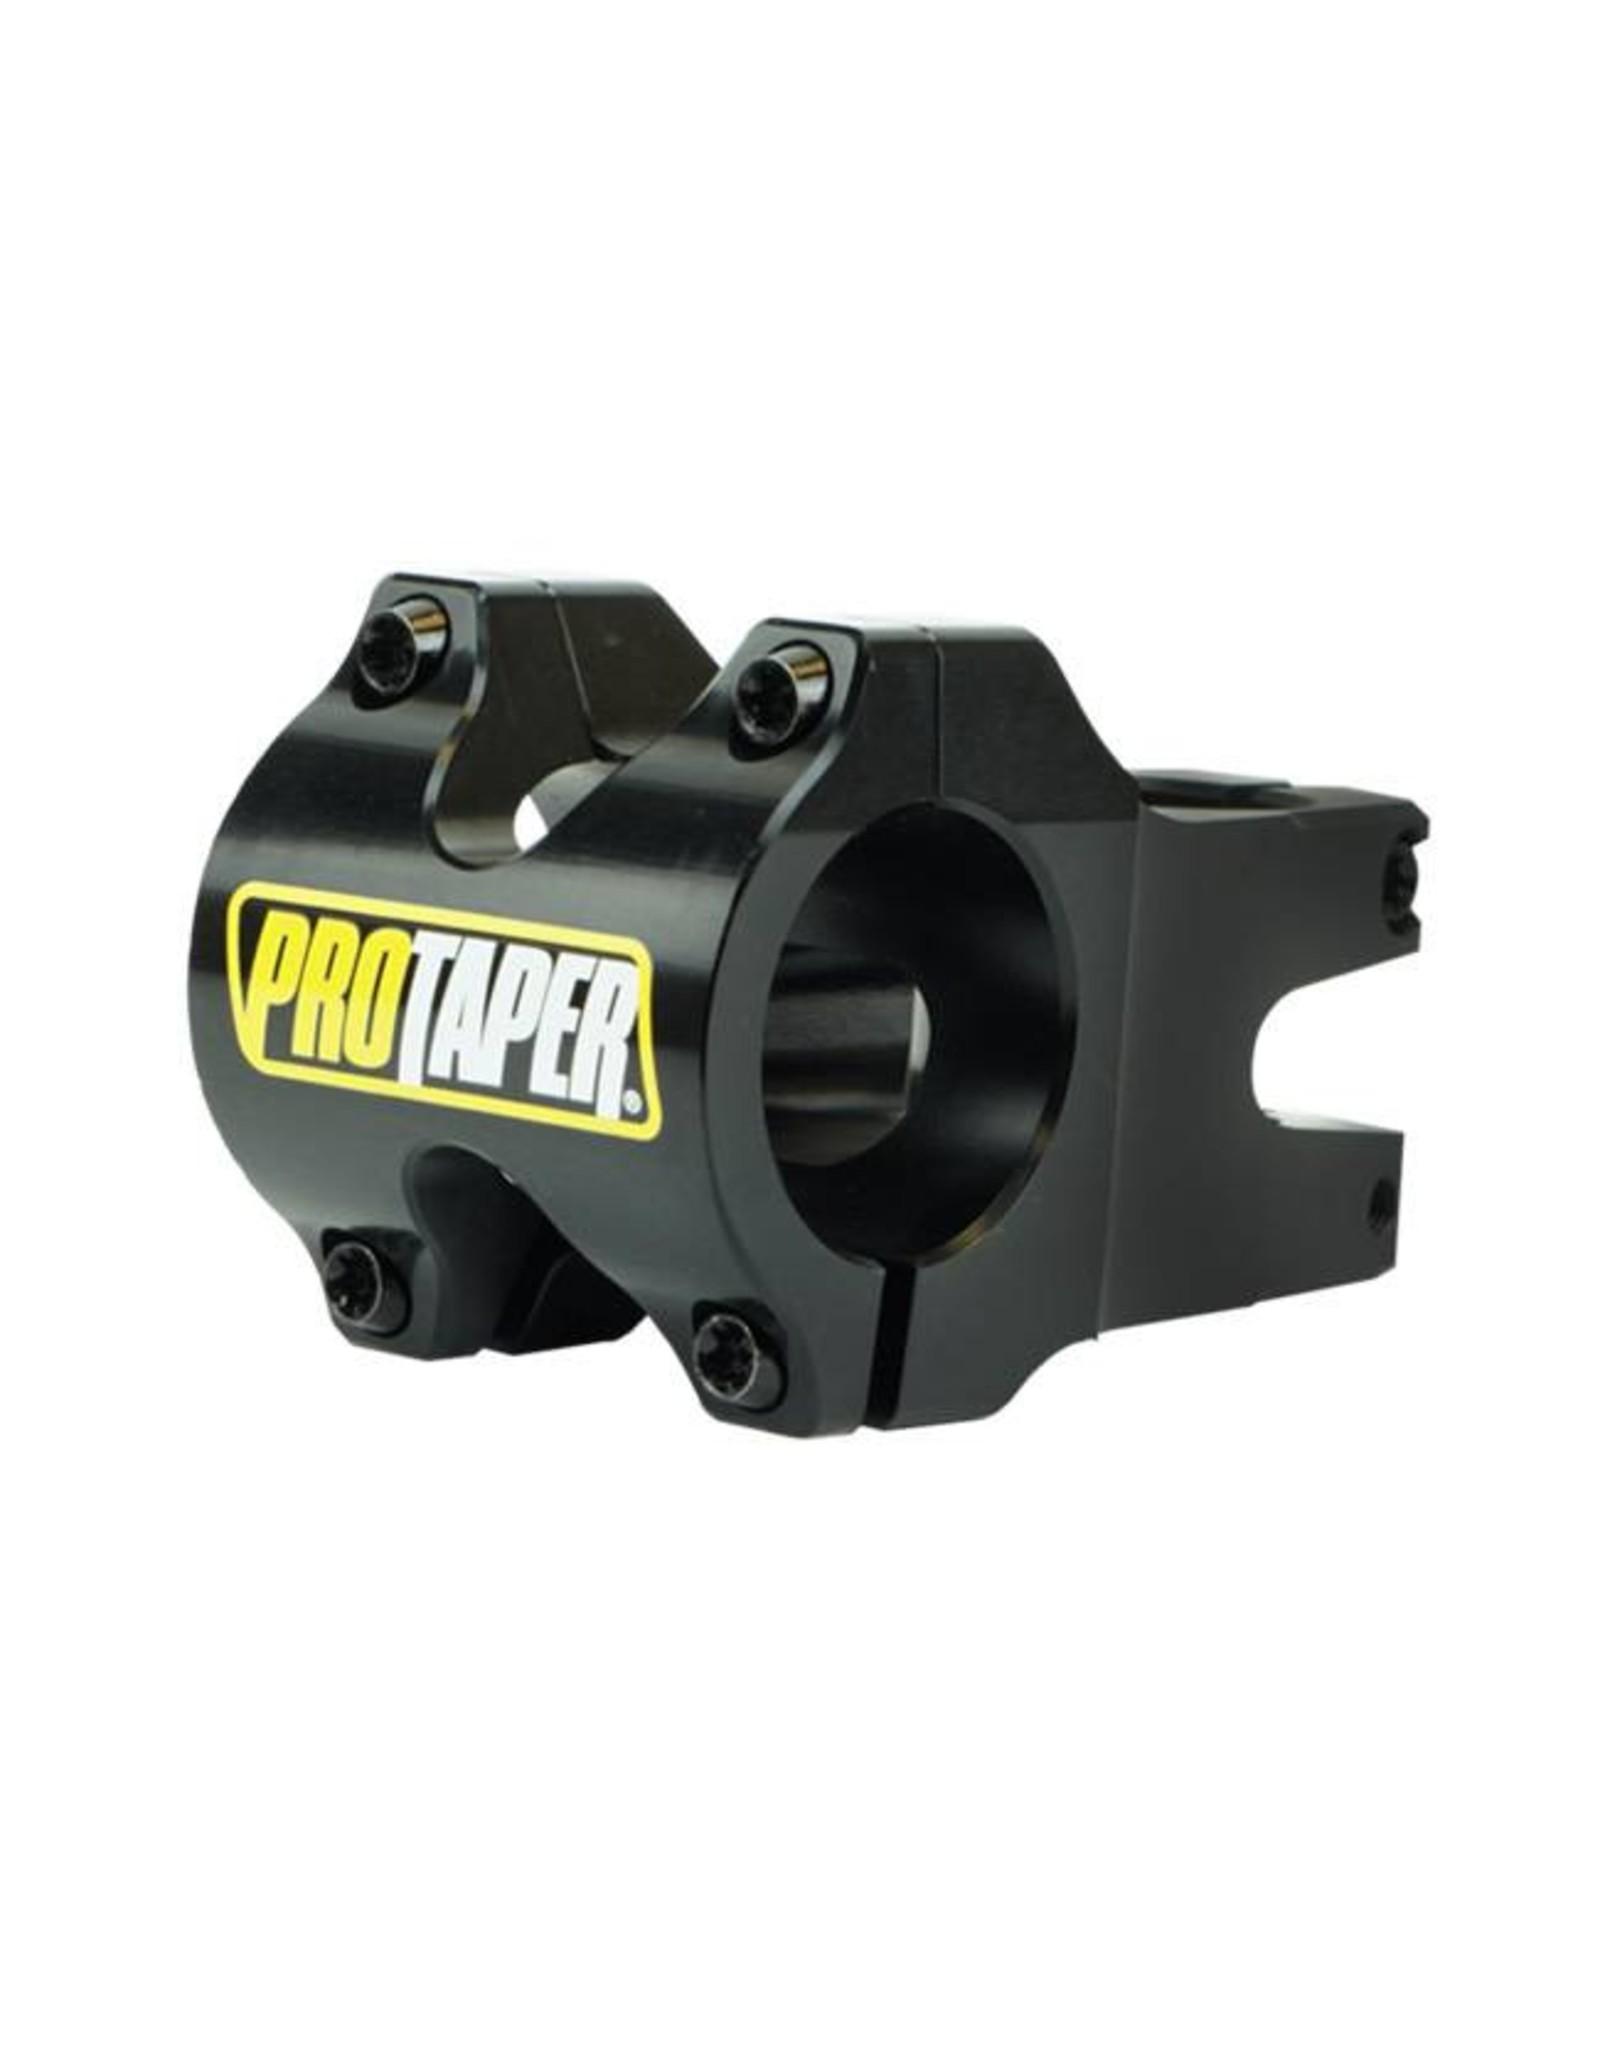 ProTaper ProTaper Stem, 50mm, 35mm Bar Clamp Black